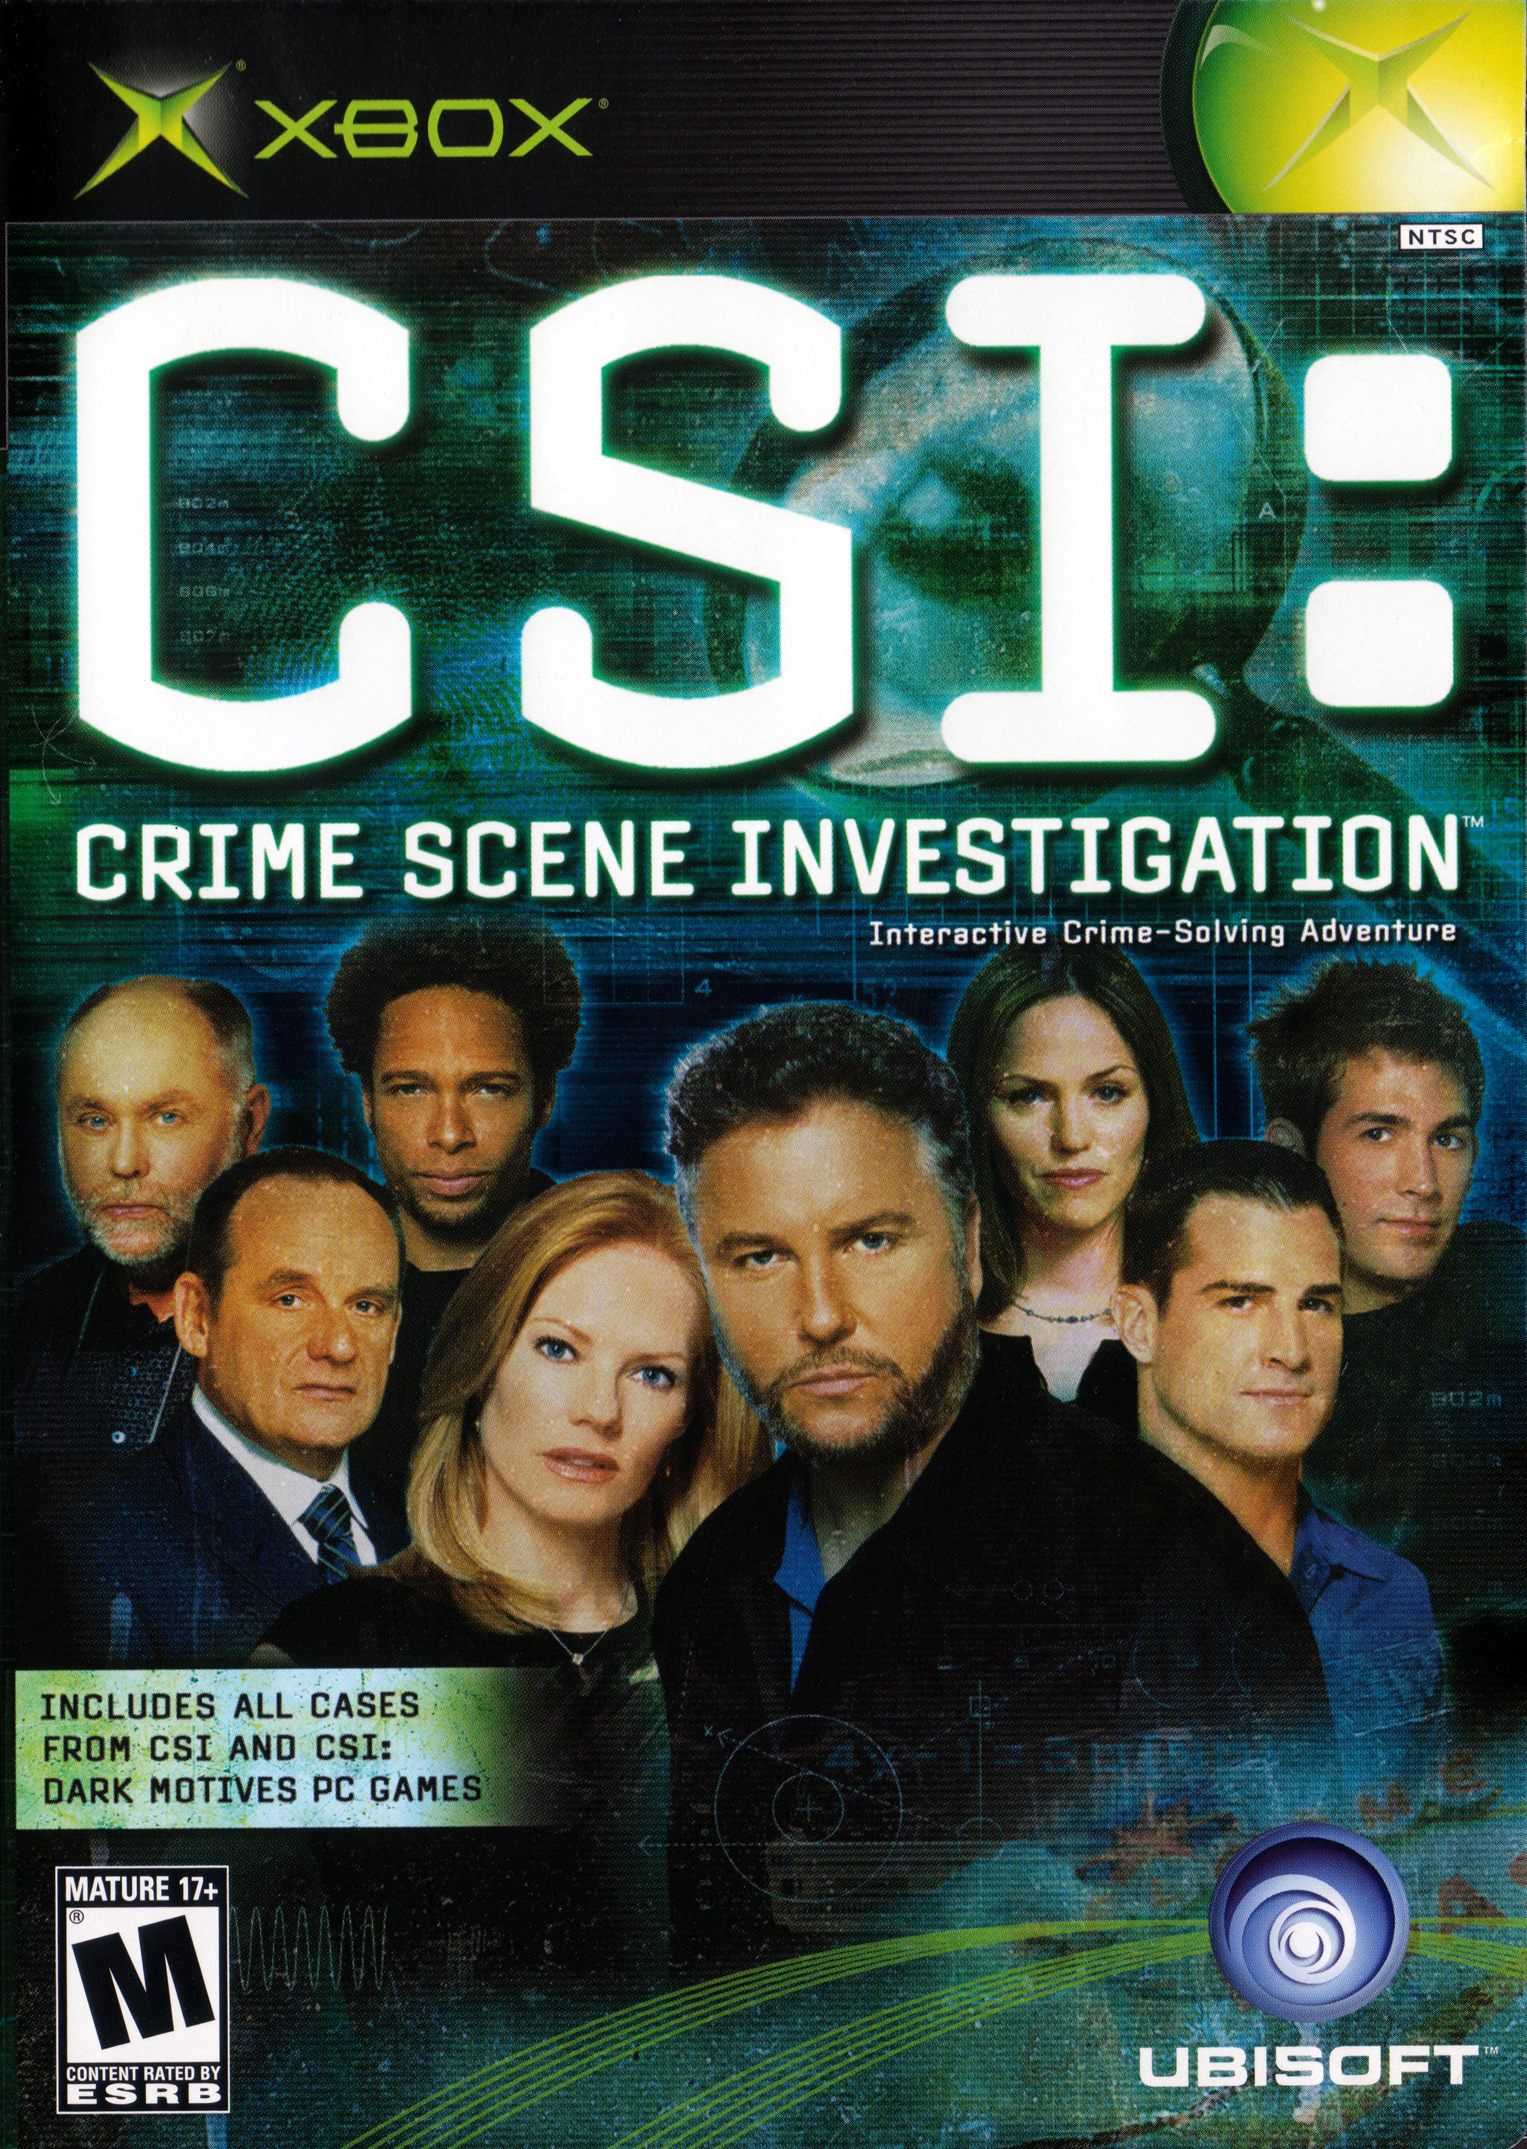 csi board game instructions - strattonhomeinspection.com